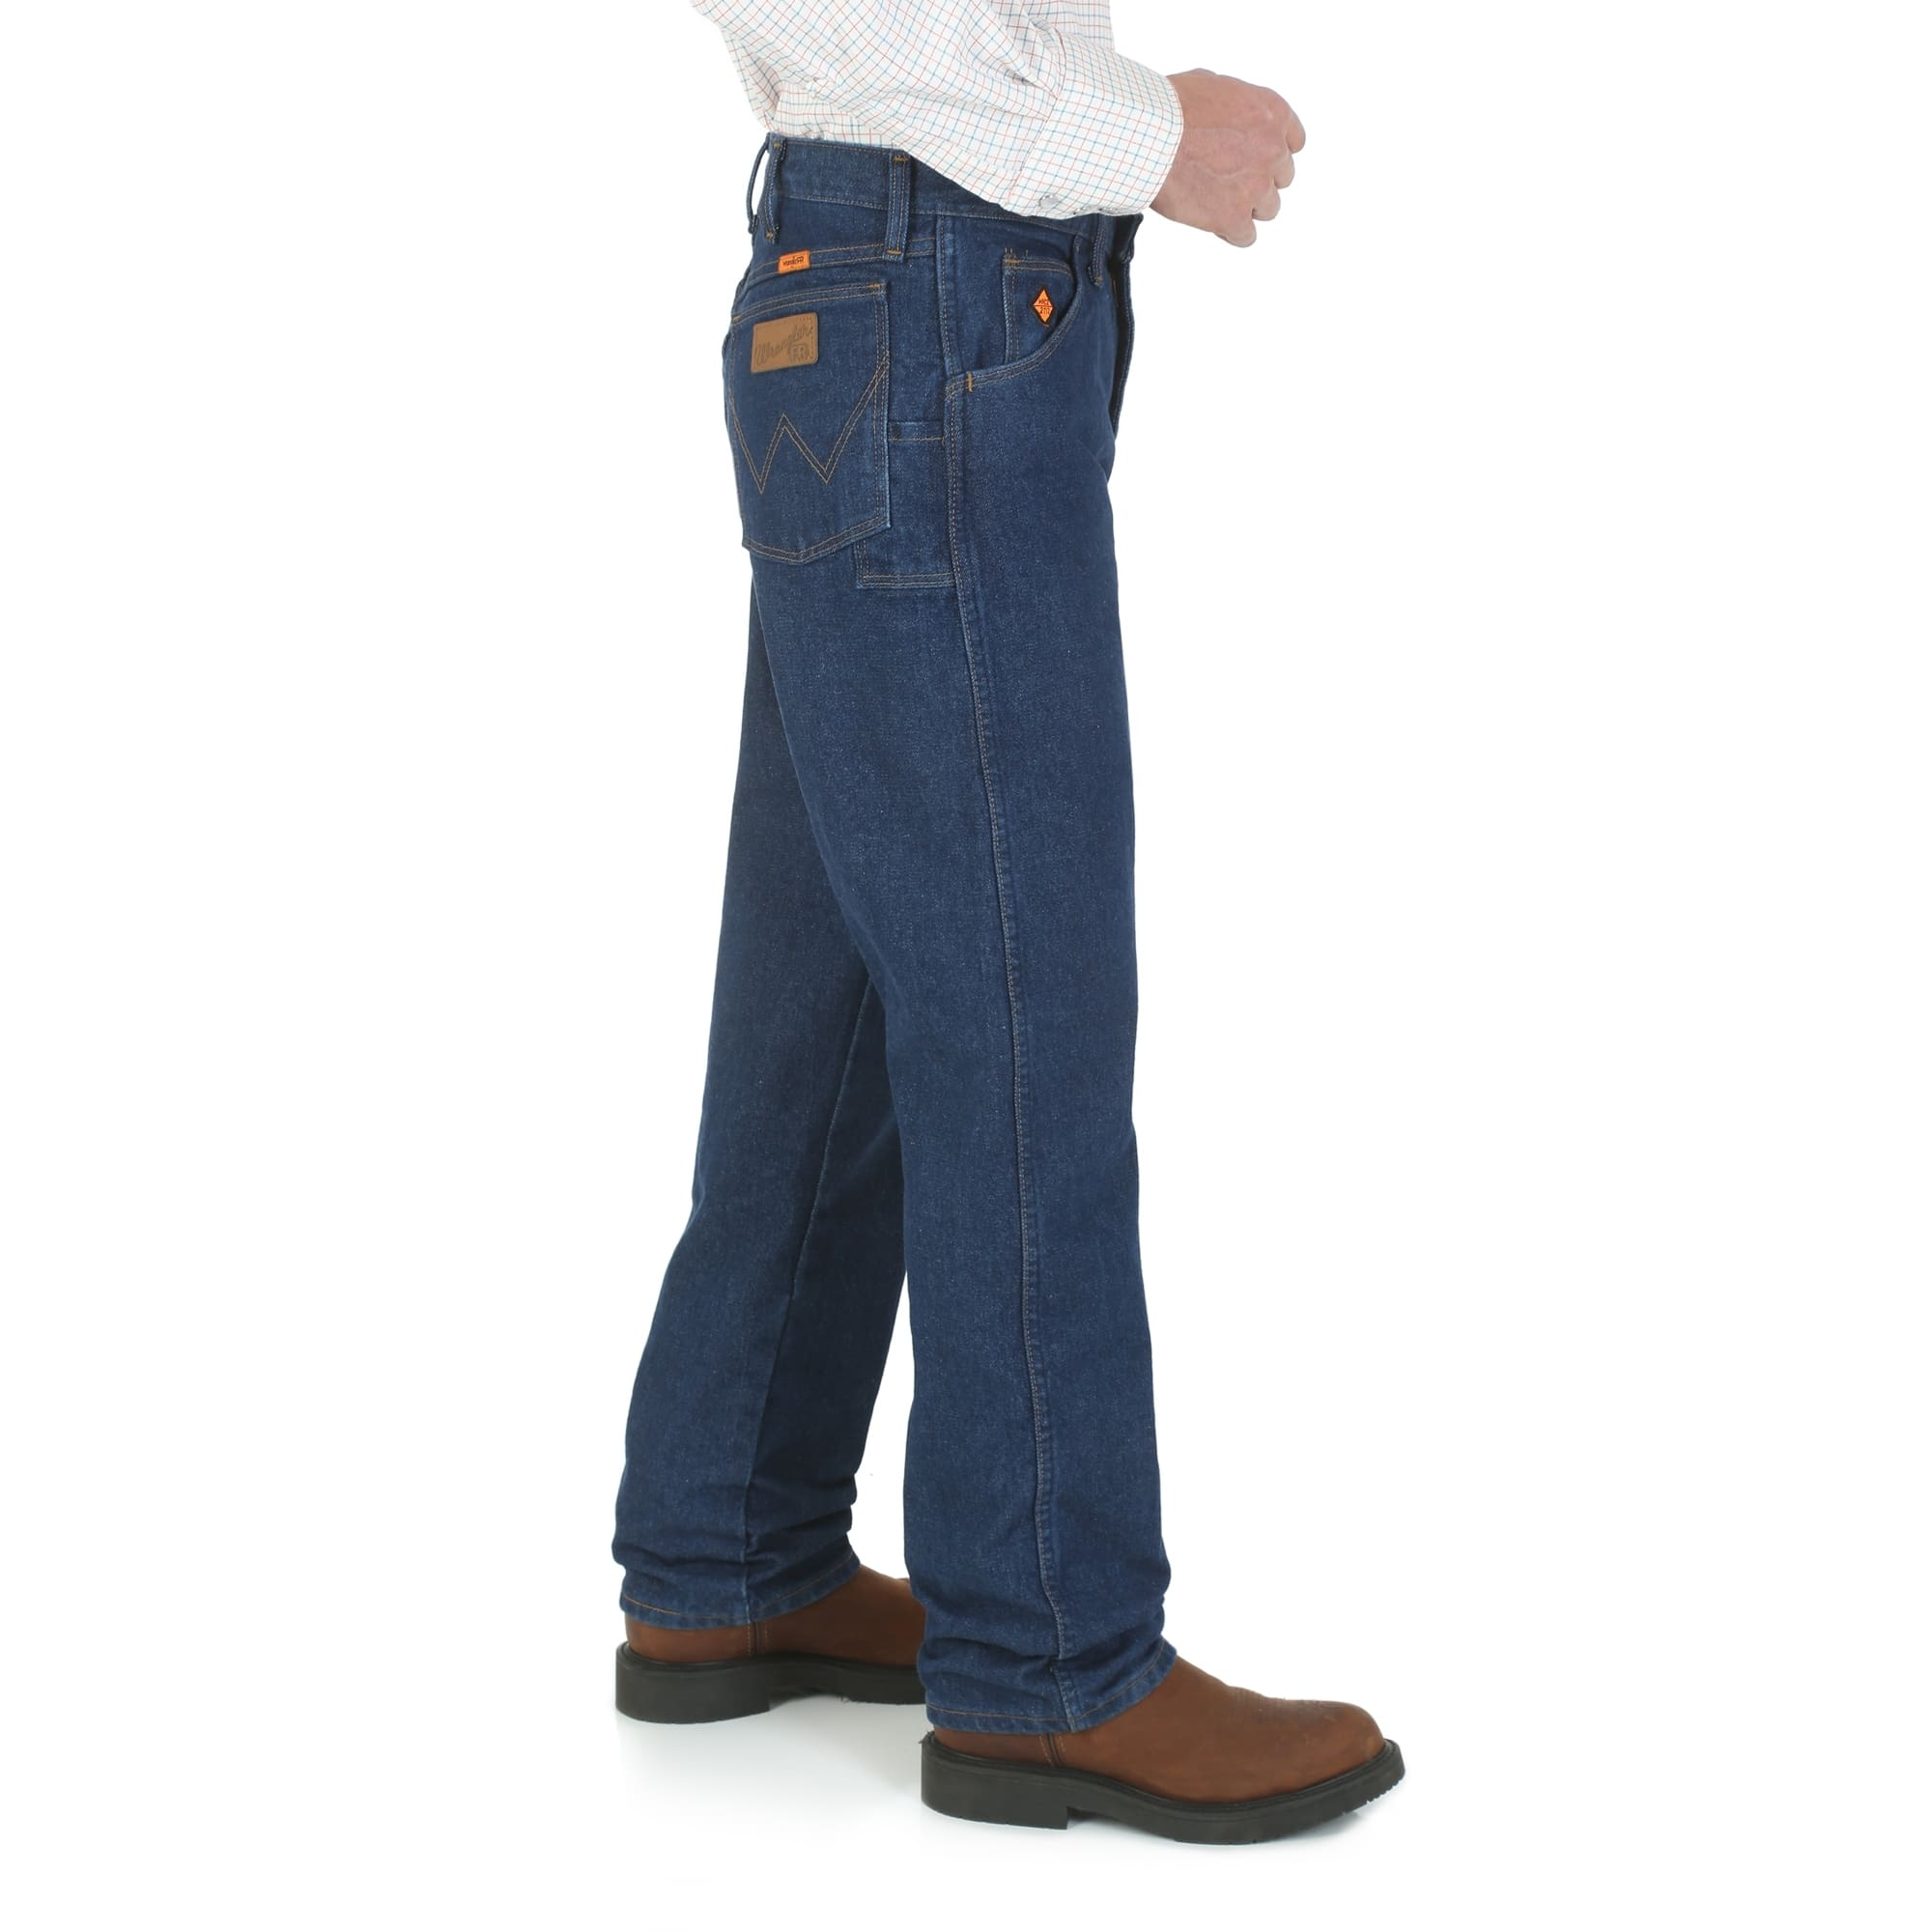 cc483022c8a ... Wrangler Fire Retardant Jeans Relaxed Fit ...